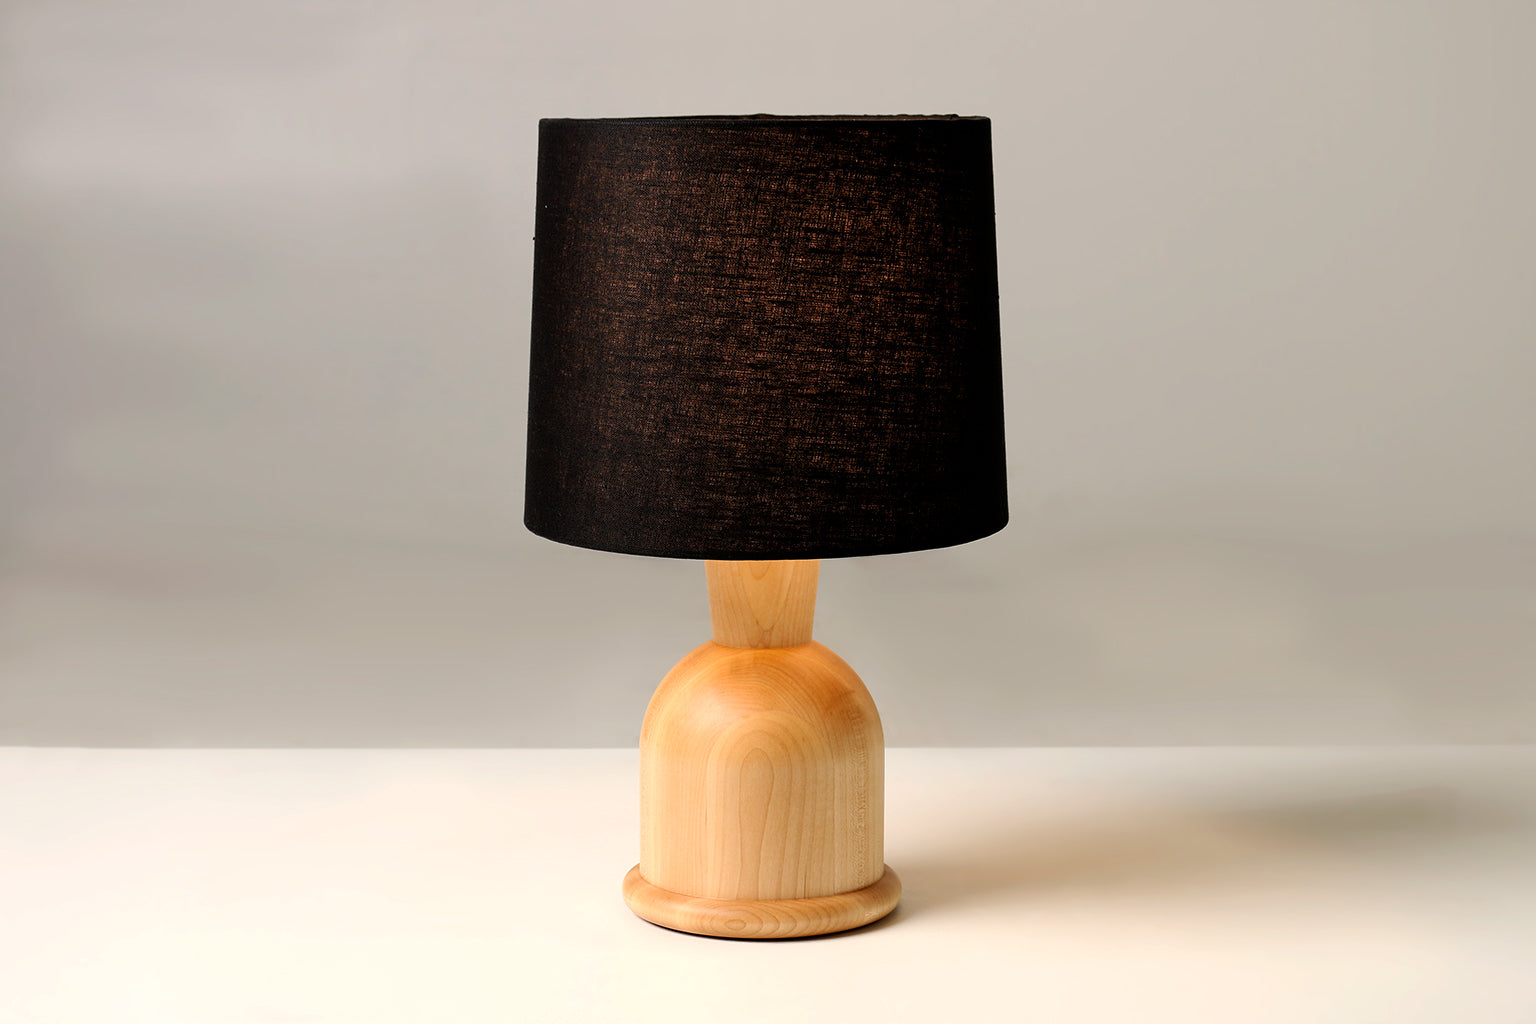 "Beacon 18"" High Table Lamp with Maple Hardwood Base and Black Linen Shade by Studio DUNN"